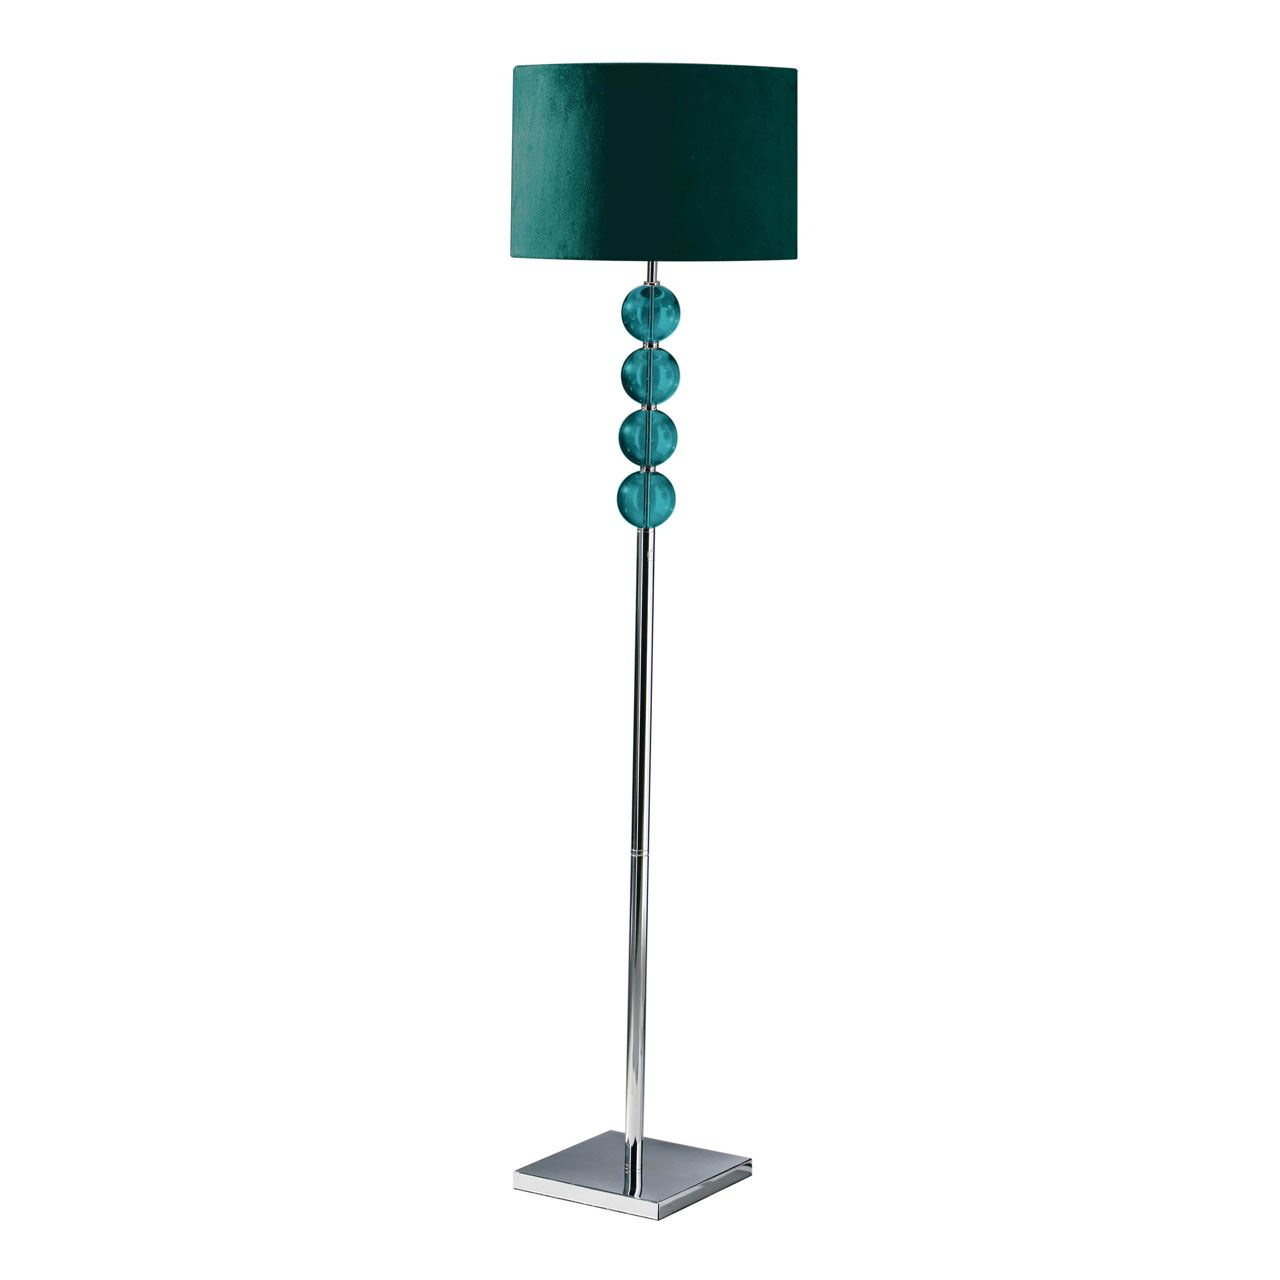 Mistro Floor Lamp, Feature Chrome Base, Teal Suede Effect Shade